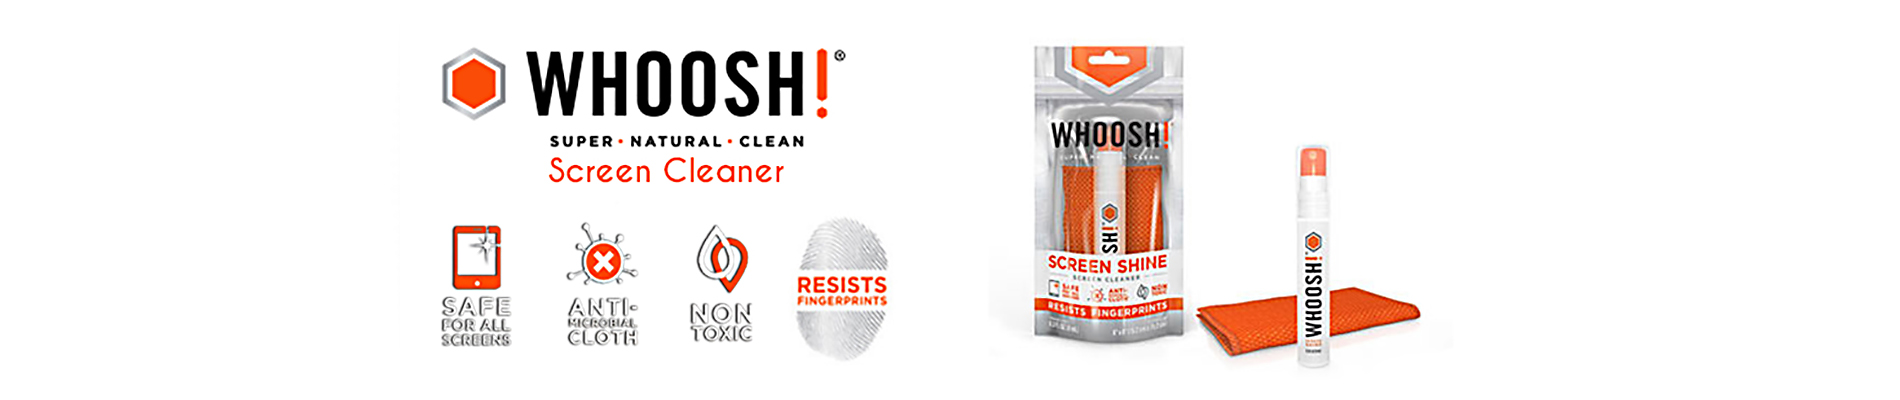 WHOOSH! Screen Cleaner